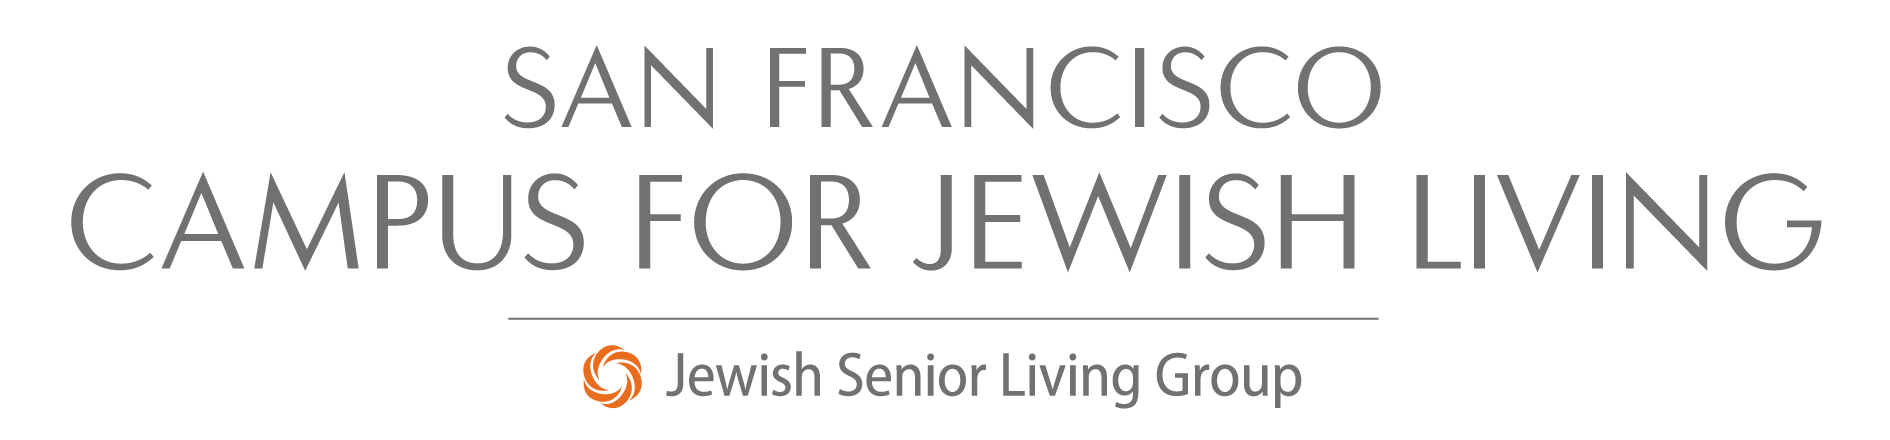 San Francisco Campus for Jewish Living logo